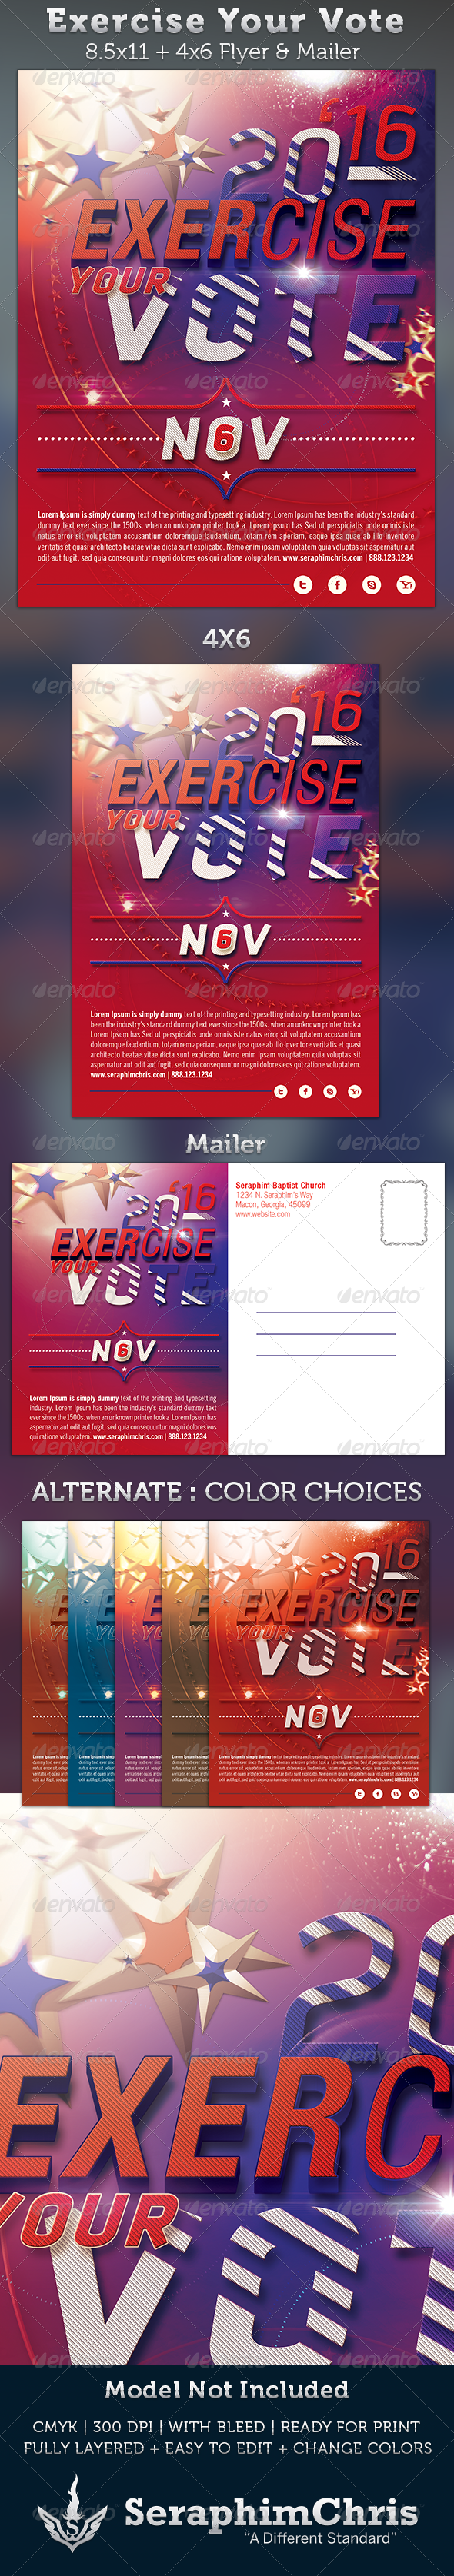 GraphicRiver Exercise Your Vote Flyer & Mailer Template 3263044